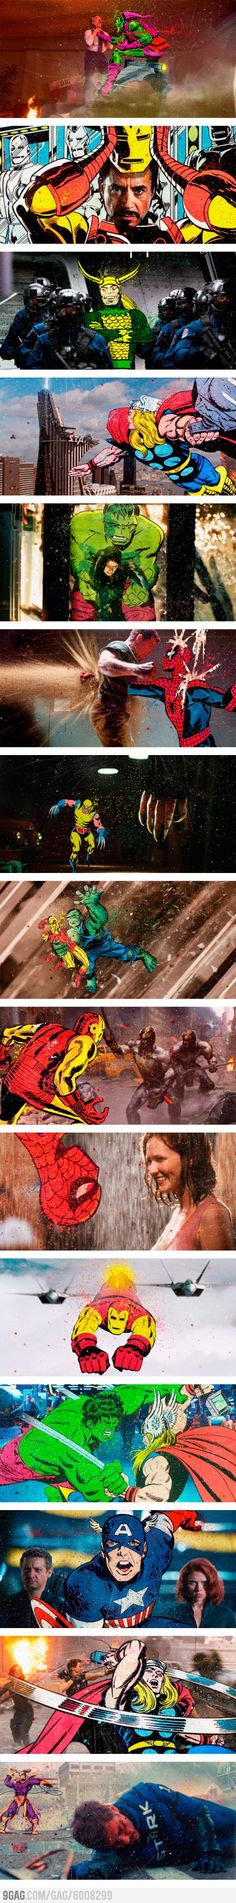 Superhero Media Crossover Project by Butcher Billy @9gag